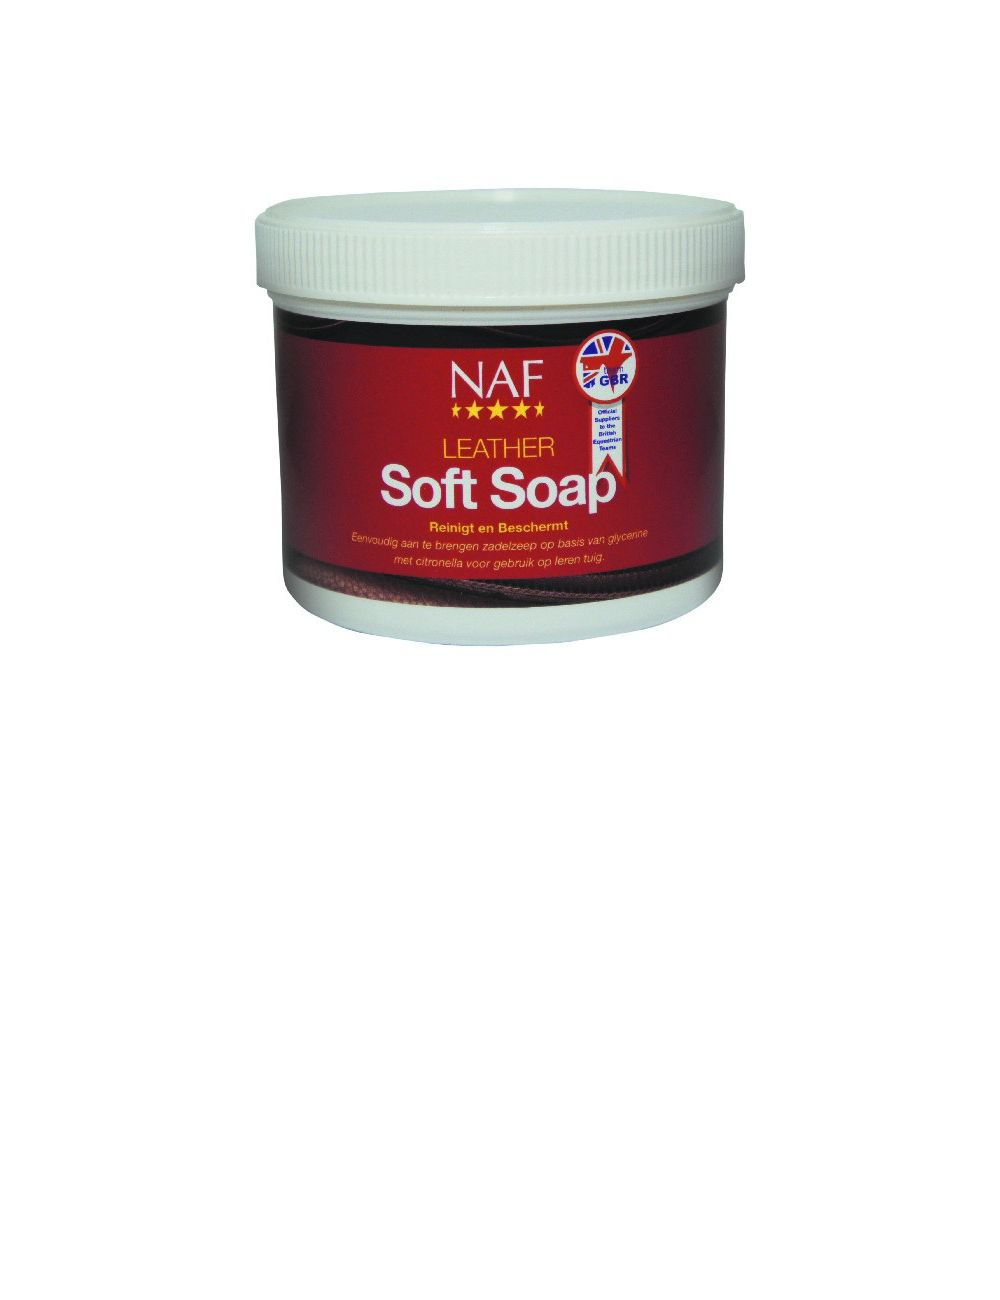 NAF Leather Soft Soap zadelzeep - 1